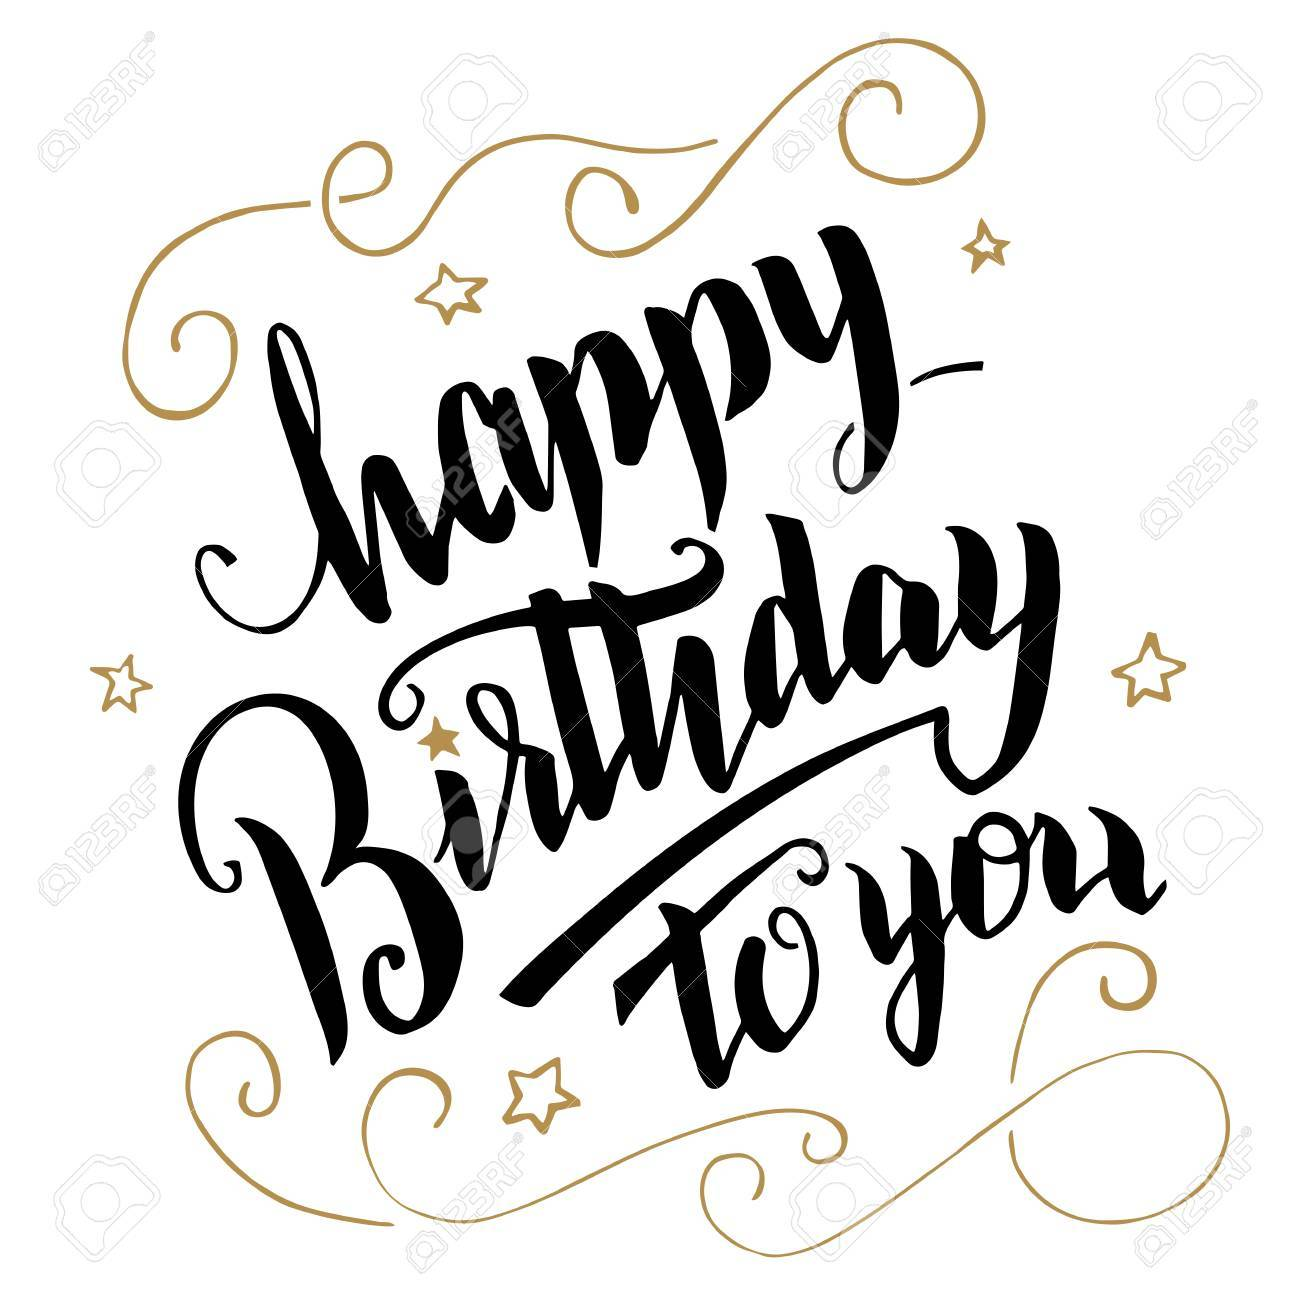 Happy Birthday Greeting Card Brush Calligraphy Handwritten Text Stock Vector